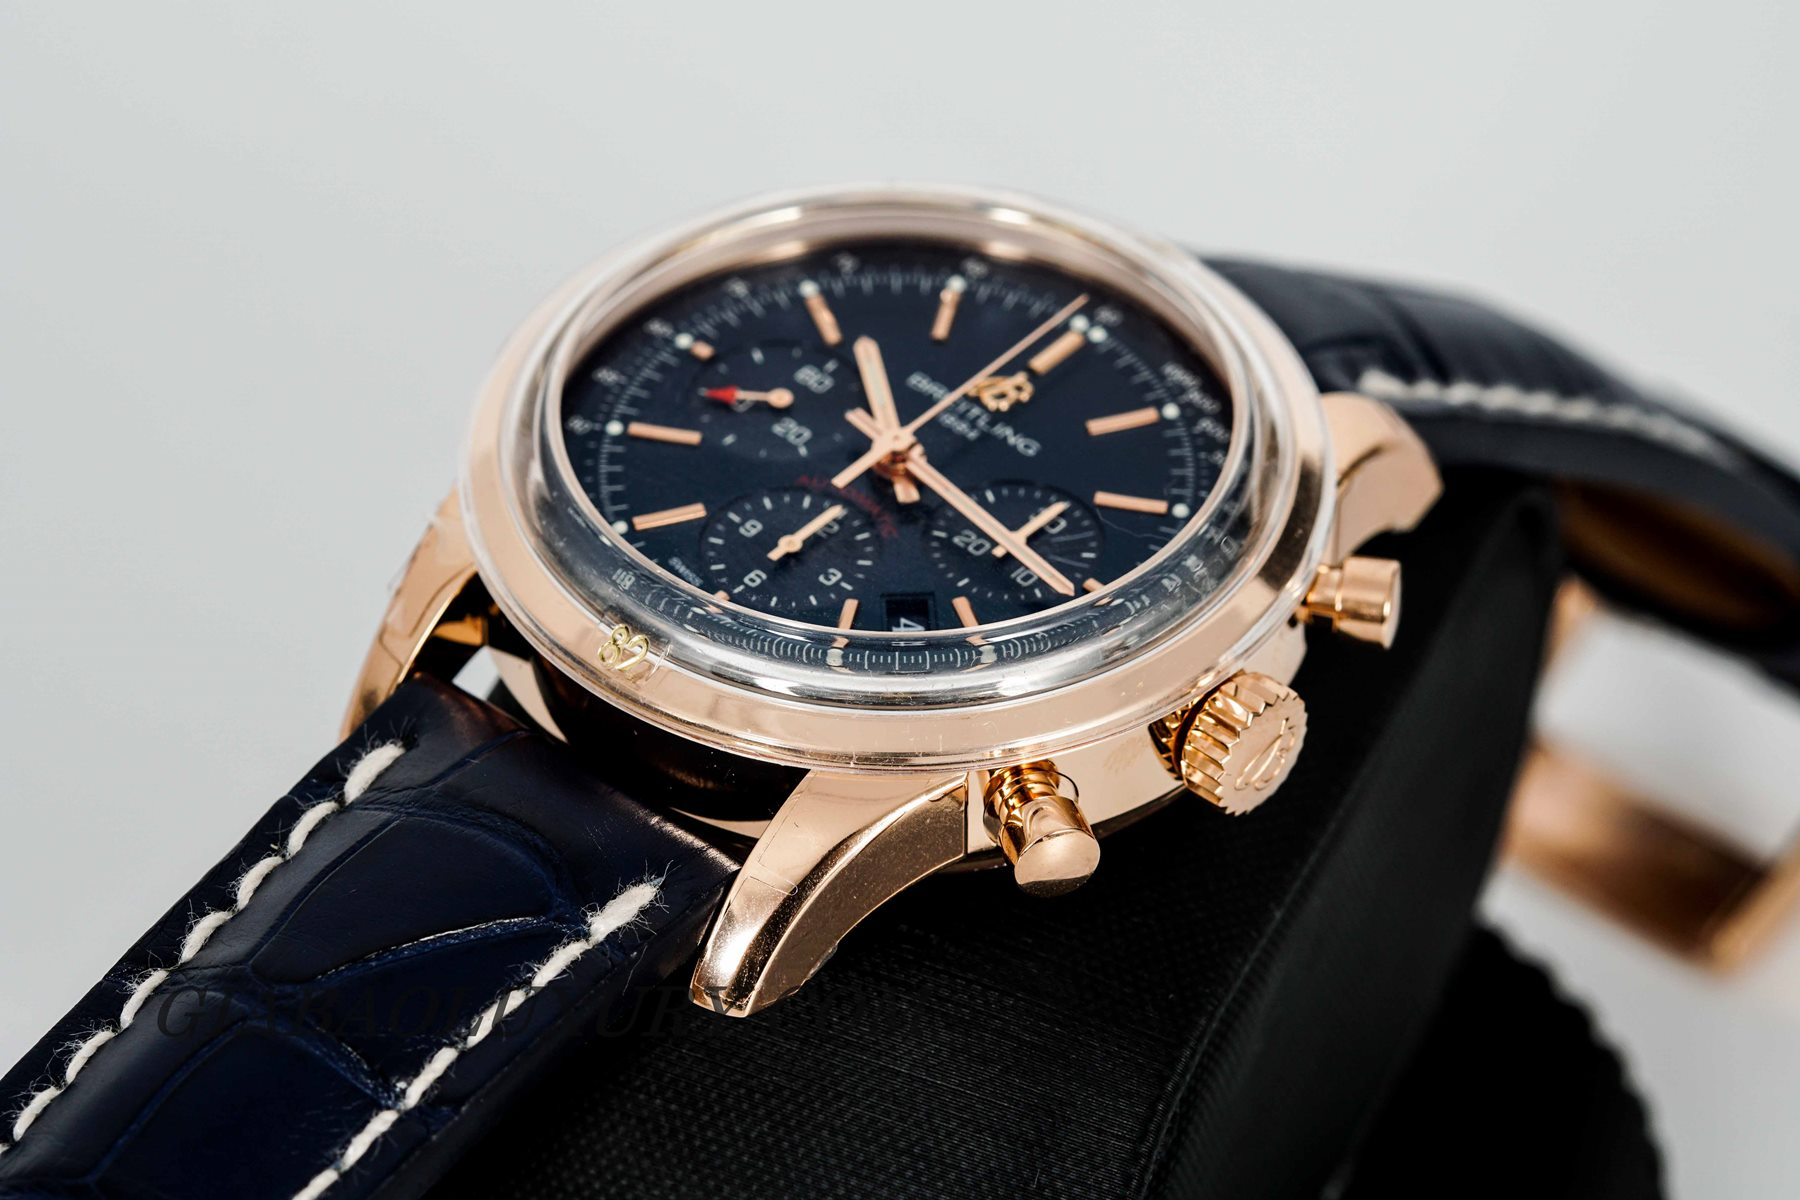 Đồng Hồ Breitling Transocean Chronograph RB015212/C940/731P